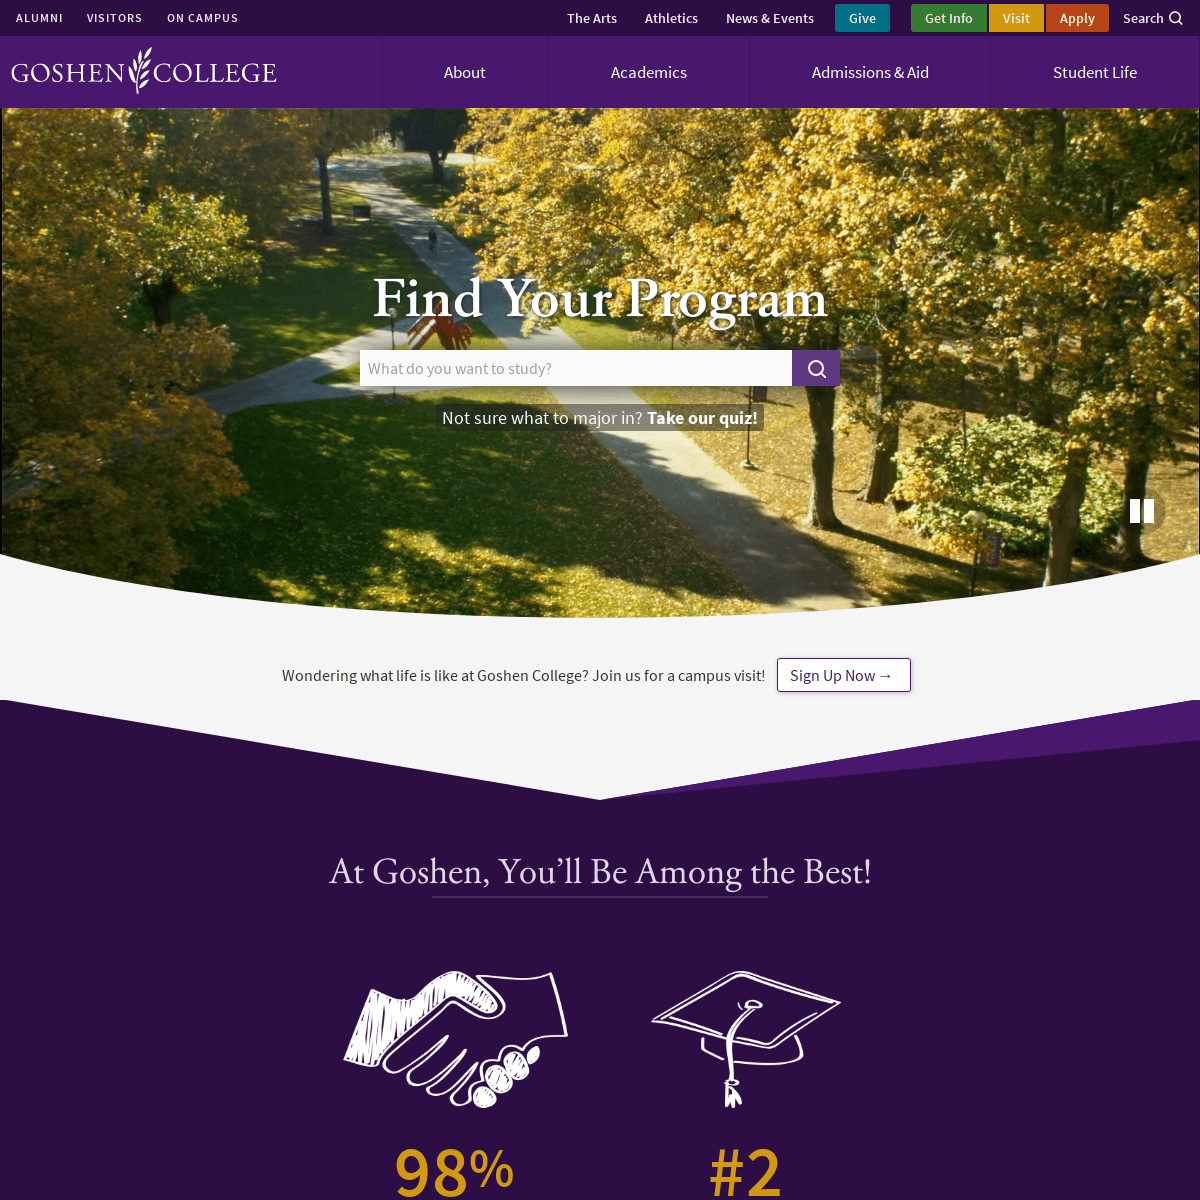 Goshen College - A Christian Liberal Arts College in Indiana